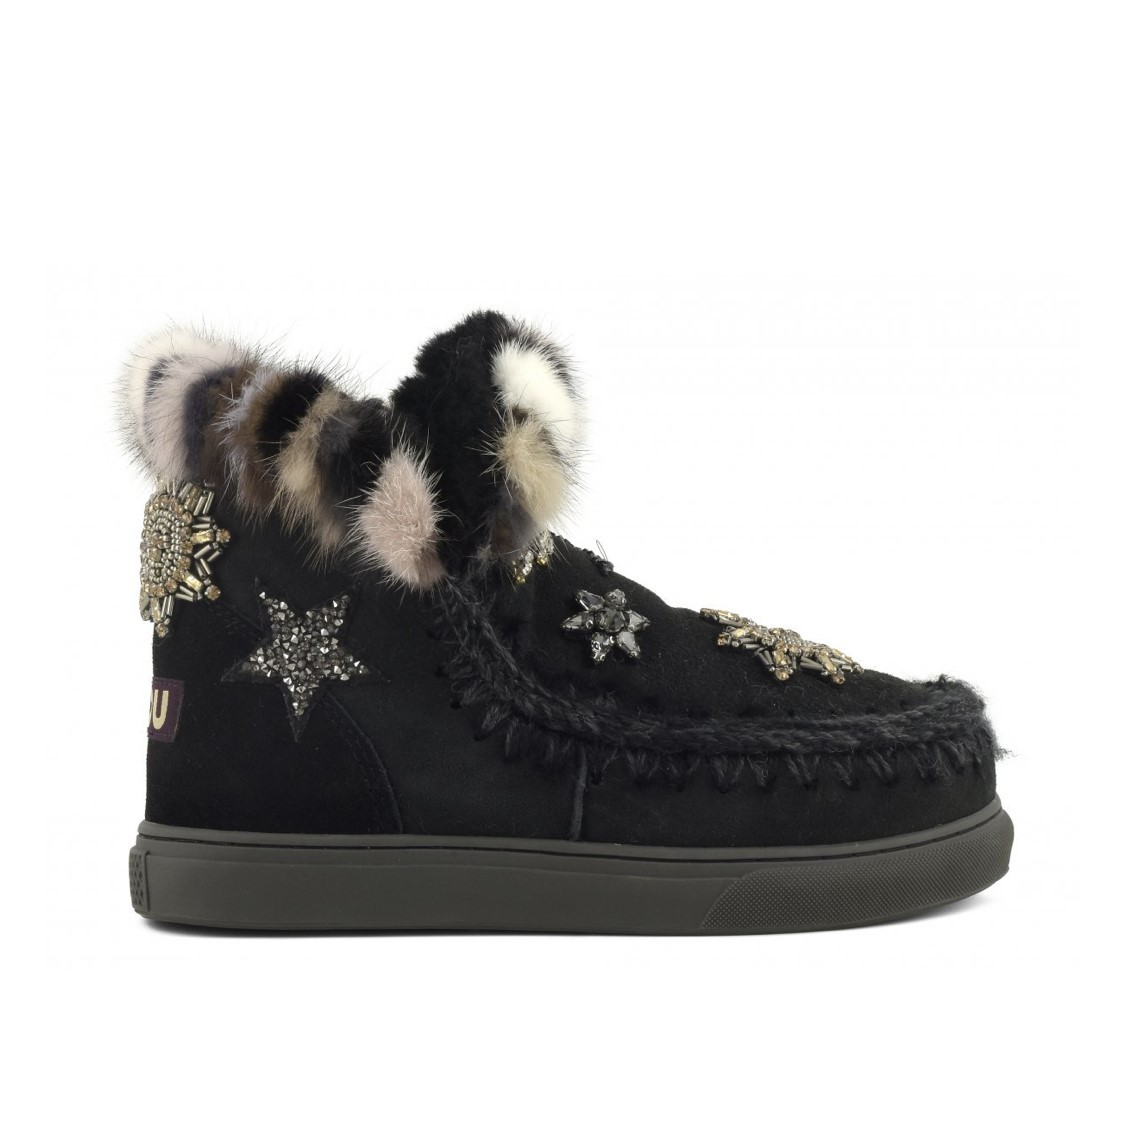 Mou sneaker star patches & mink